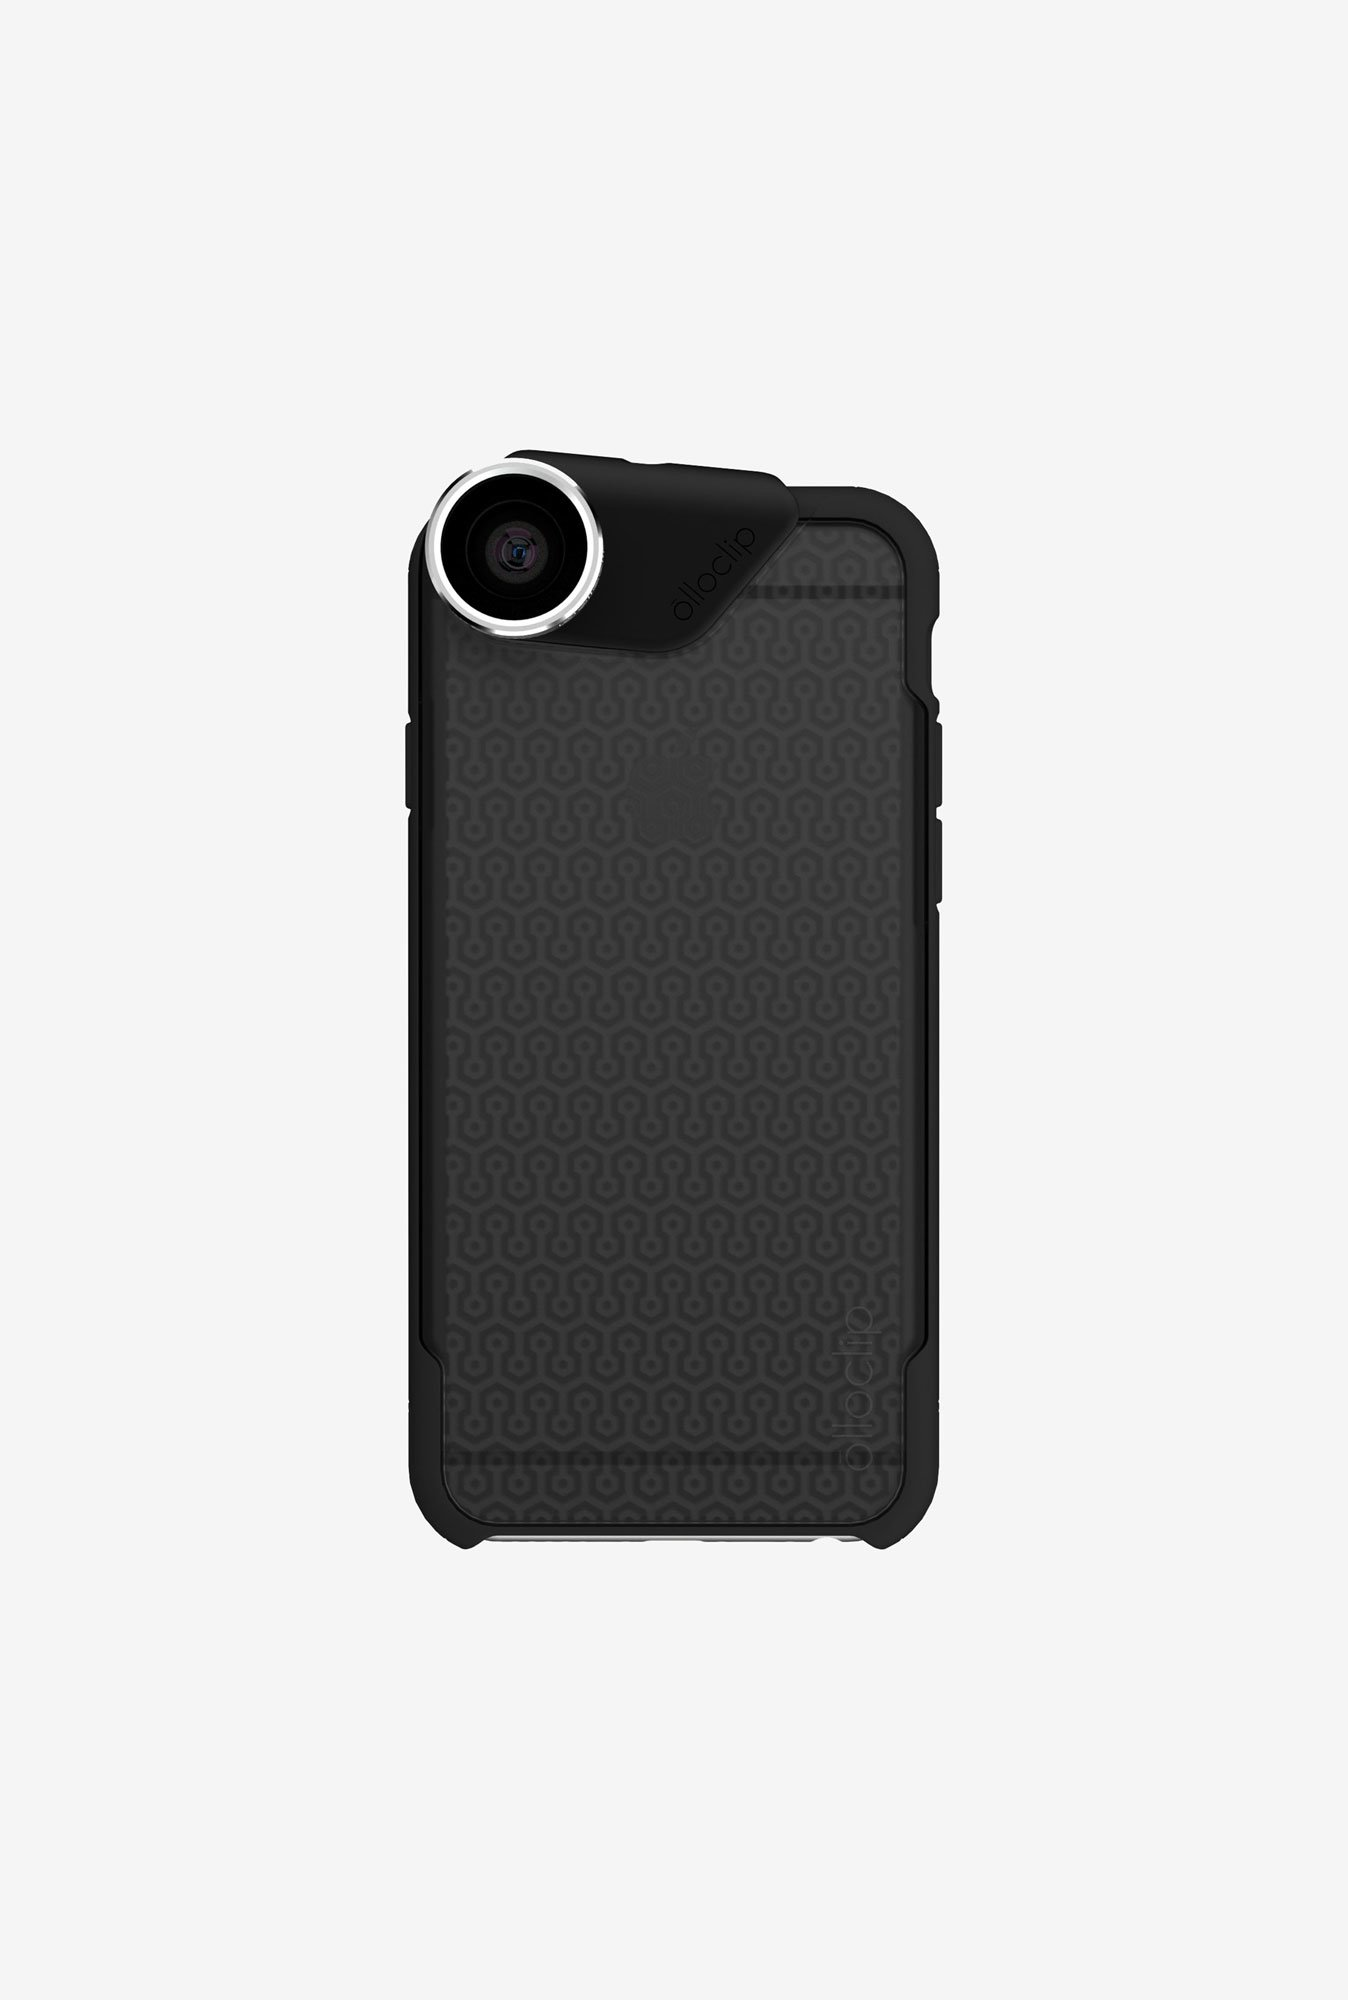 Olloclip 4-IN-1 Lens with Ollo Case Black for iPhone 6/6S